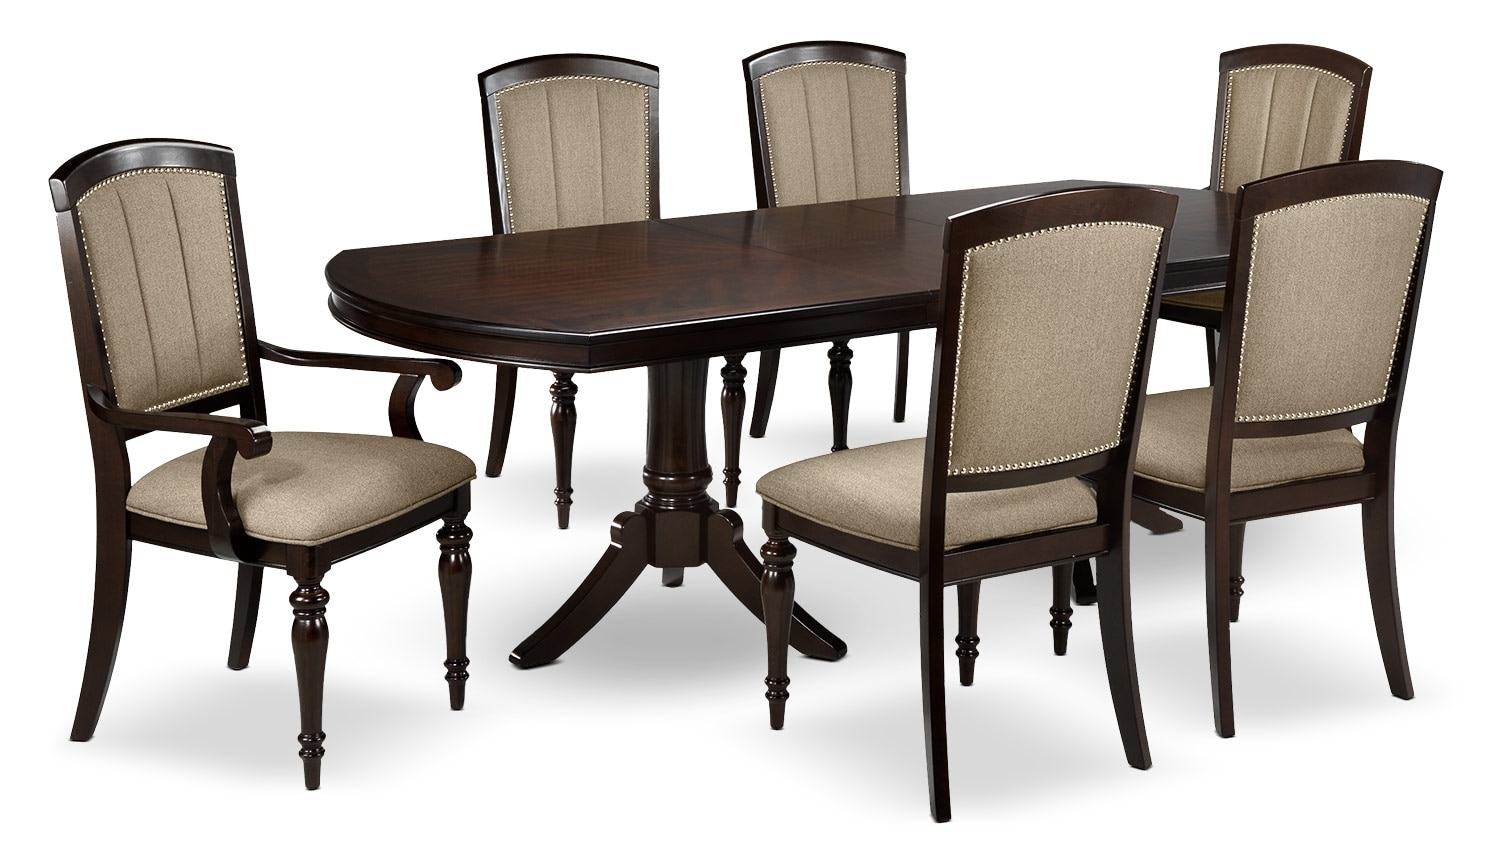 Dining room furniture leon 39 s for Leon s dining room tables